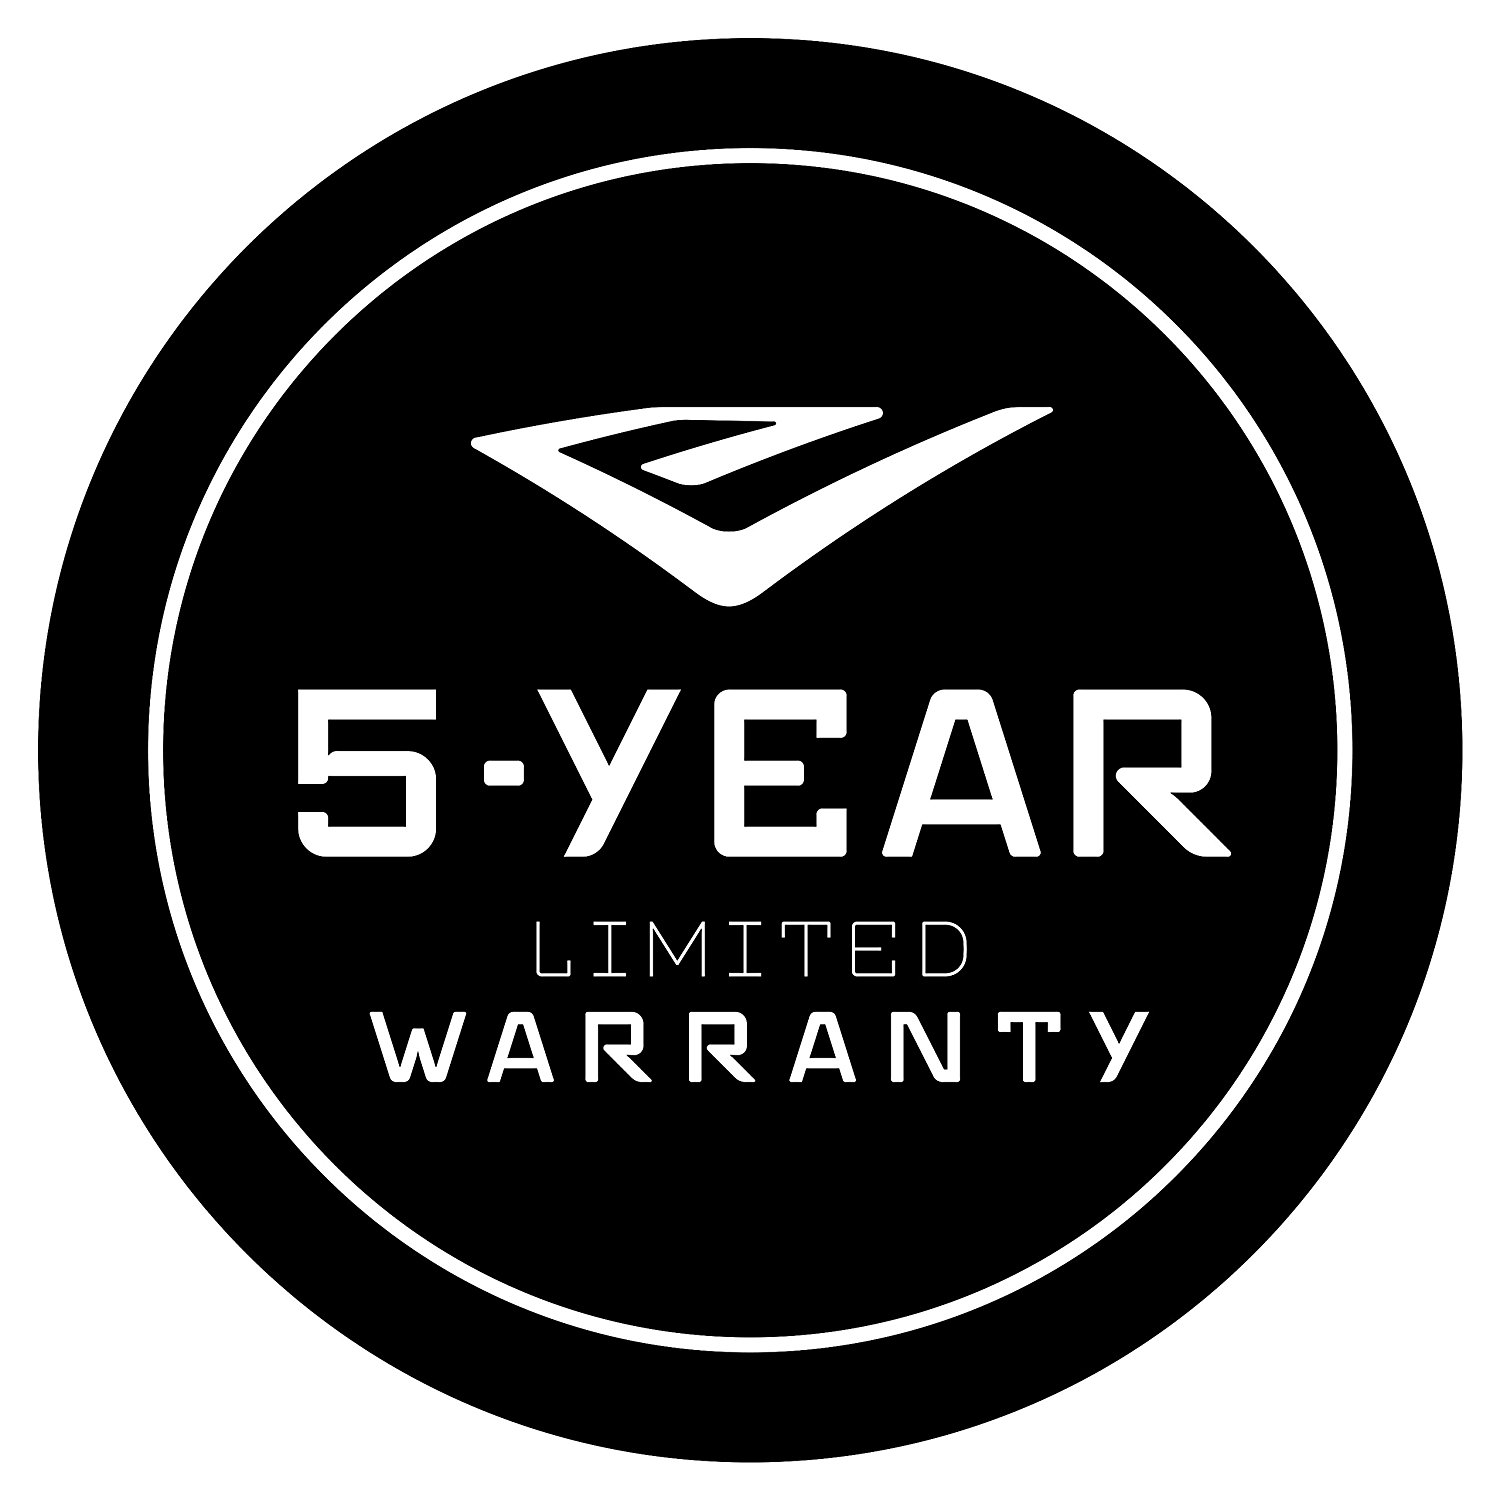 Earthquake Limited Warranty: not just 2 or 3 Years... 5 Year with Earthquake